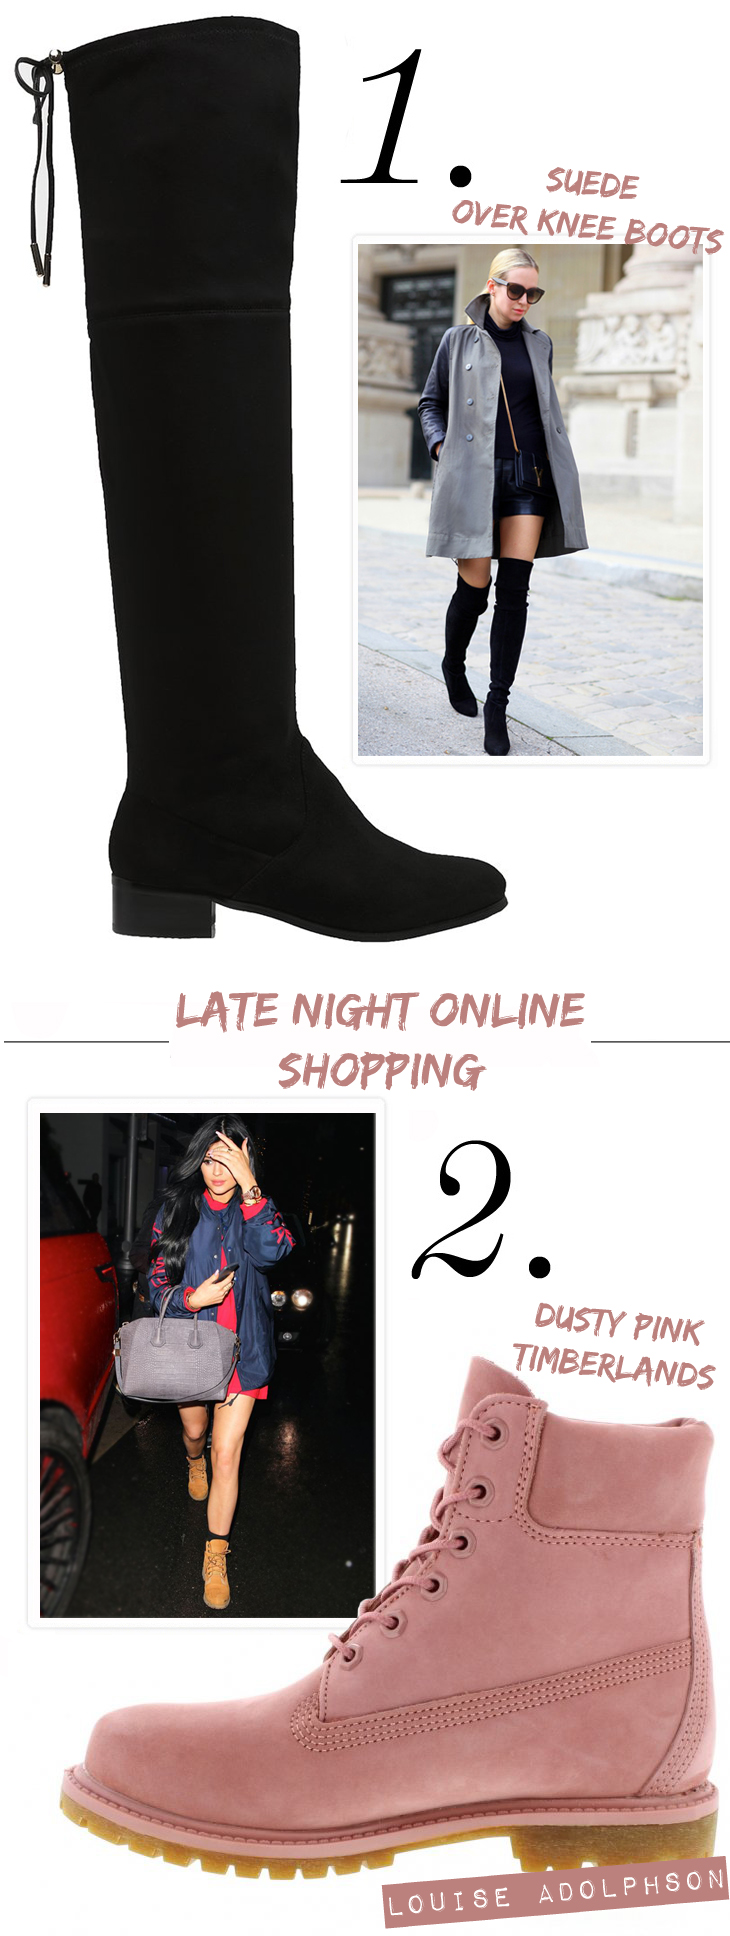 dusty pink timberlands carvela over knee suede boots kim kardashian kylie jenner fashion blogger late online shopping